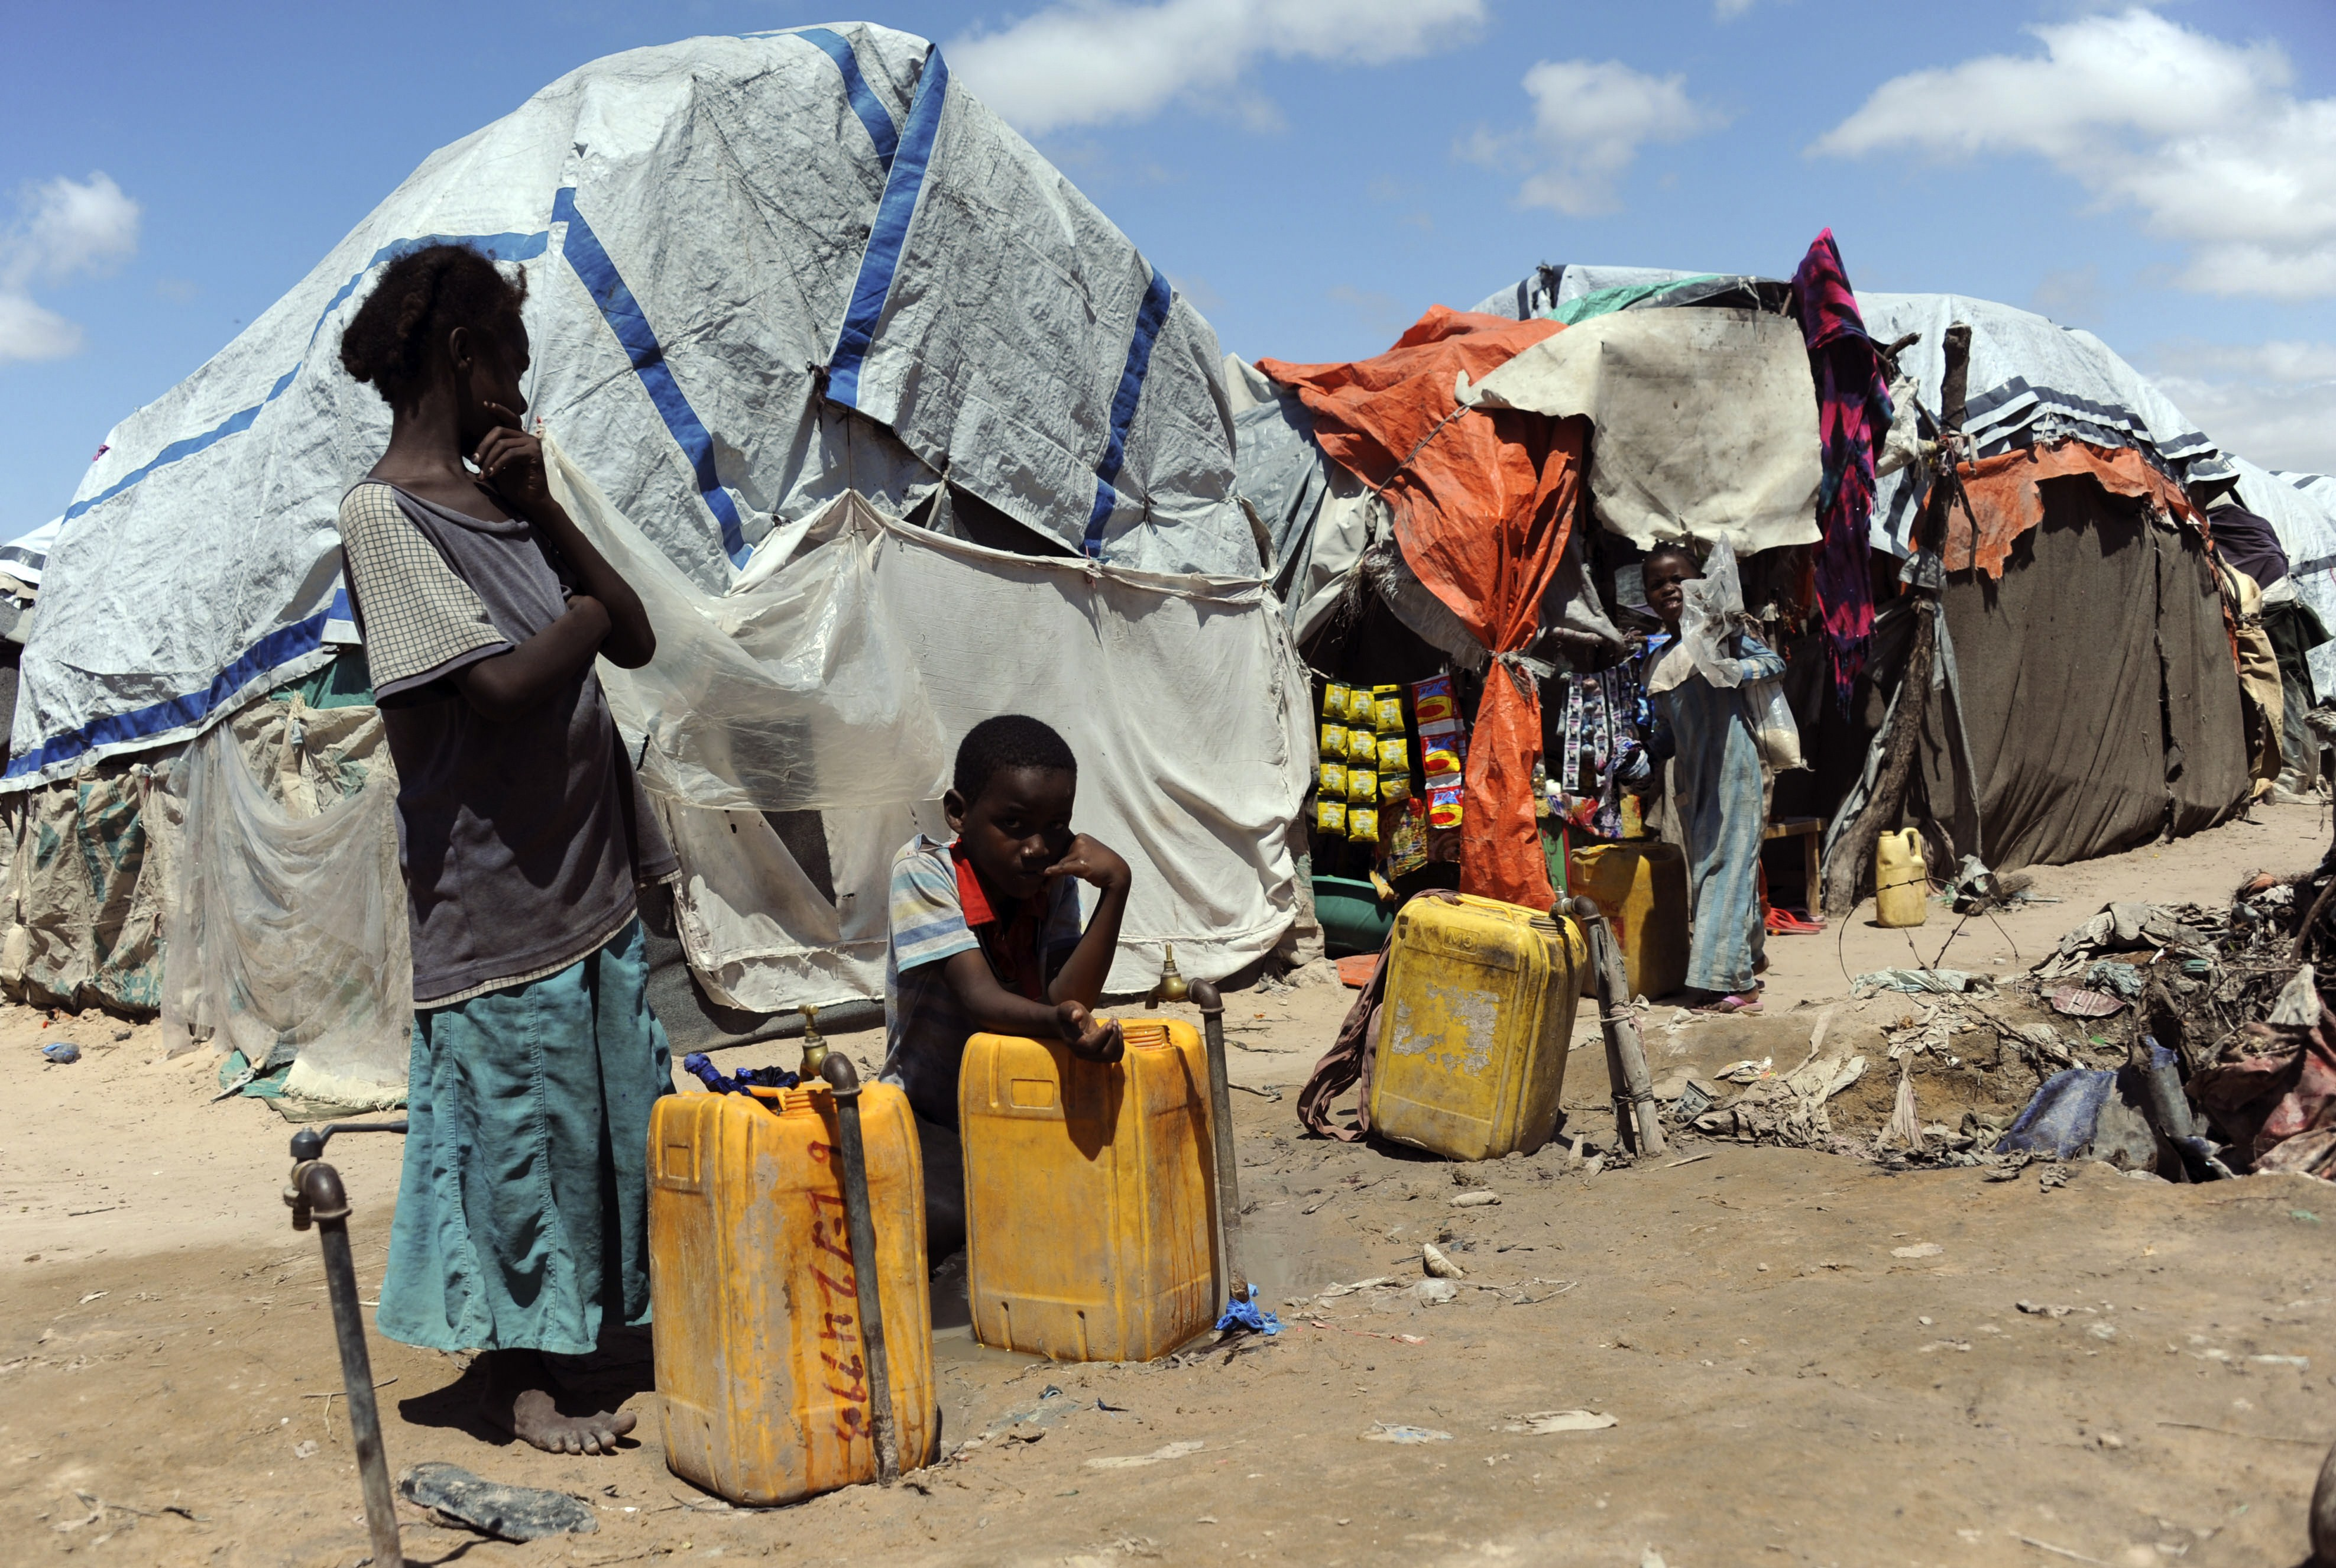 report on poverty in africa High birth rates and poverty undermine a generation of african children – report research predicts african children will account for 43% of global poverty by 2030, although absolute number of.